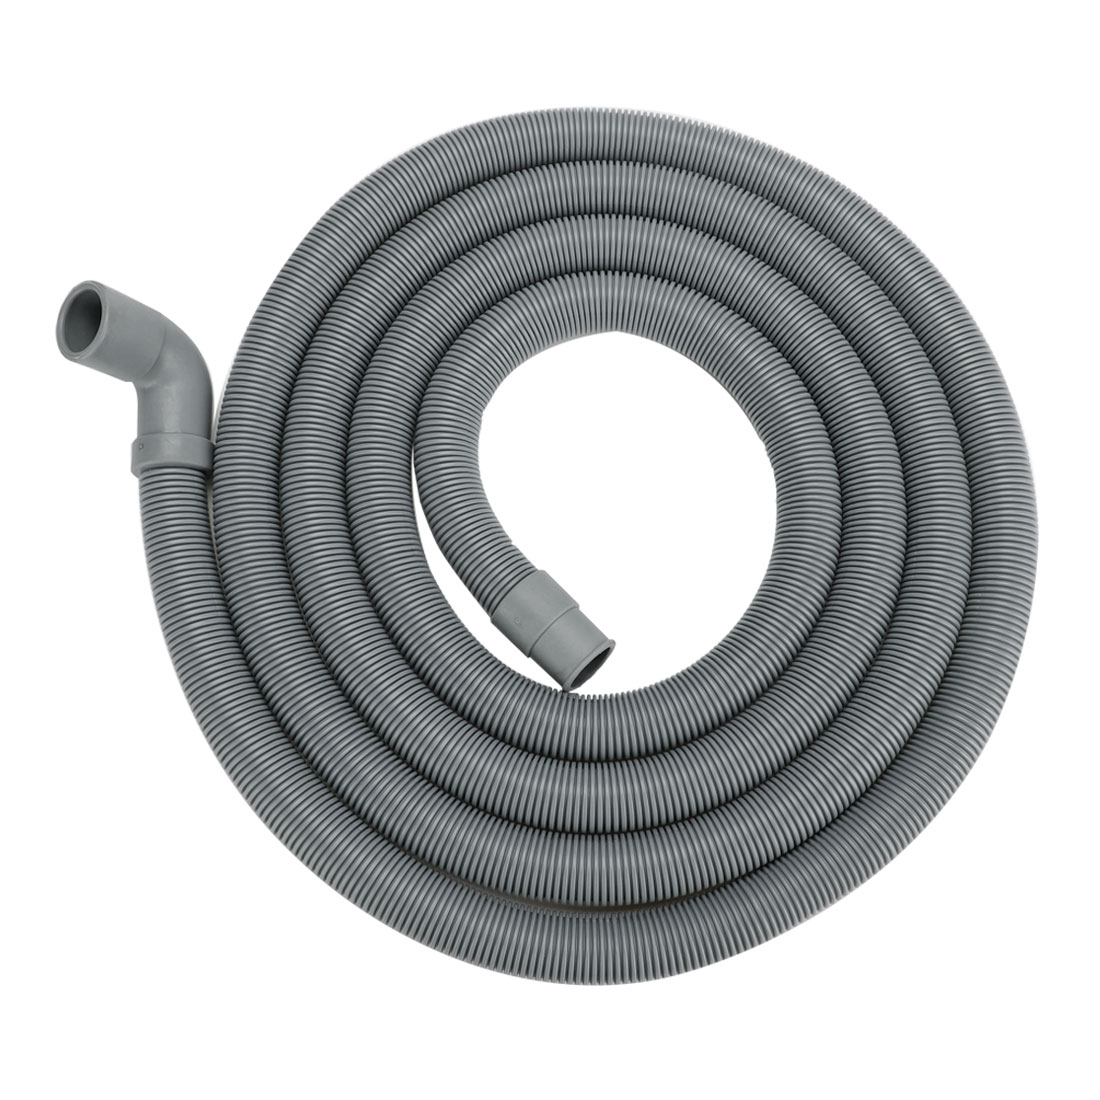 13ft 90 Degree Right Angle Elbow Washing Machine Drain Hose Extension Hose